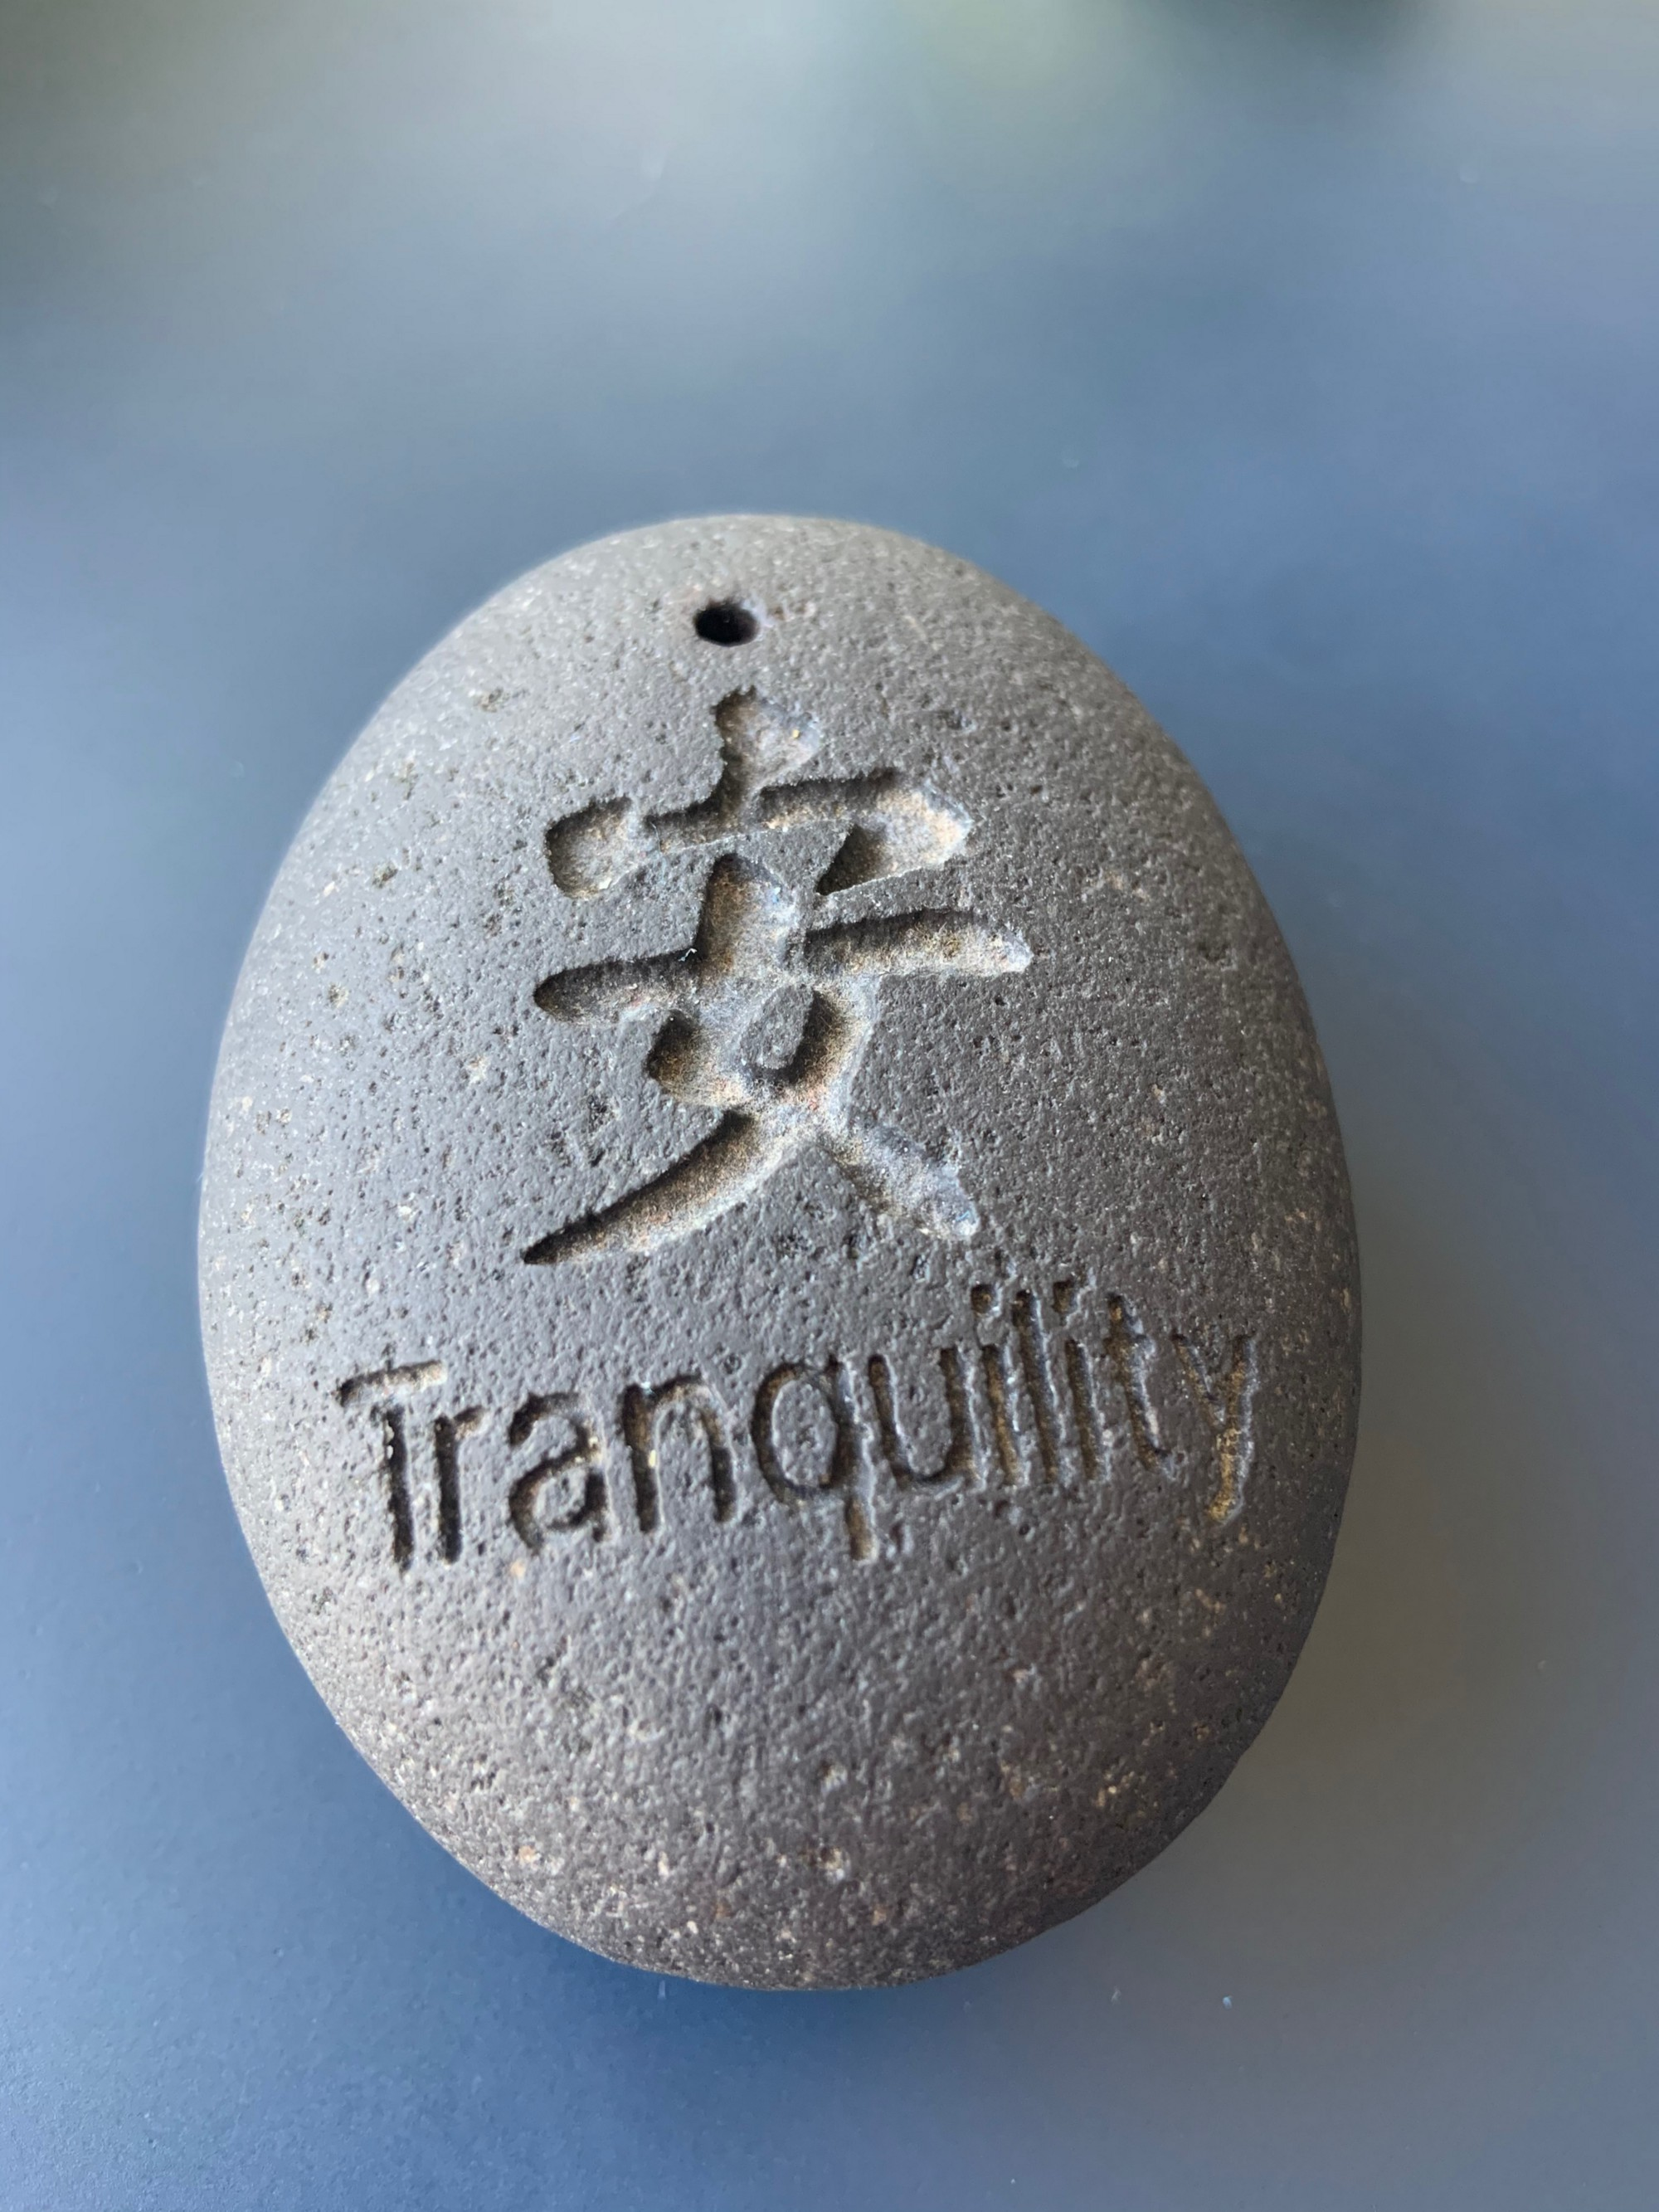 """oval stone with the word """"Tranquility"""" and a Chinese character engraved on it."""